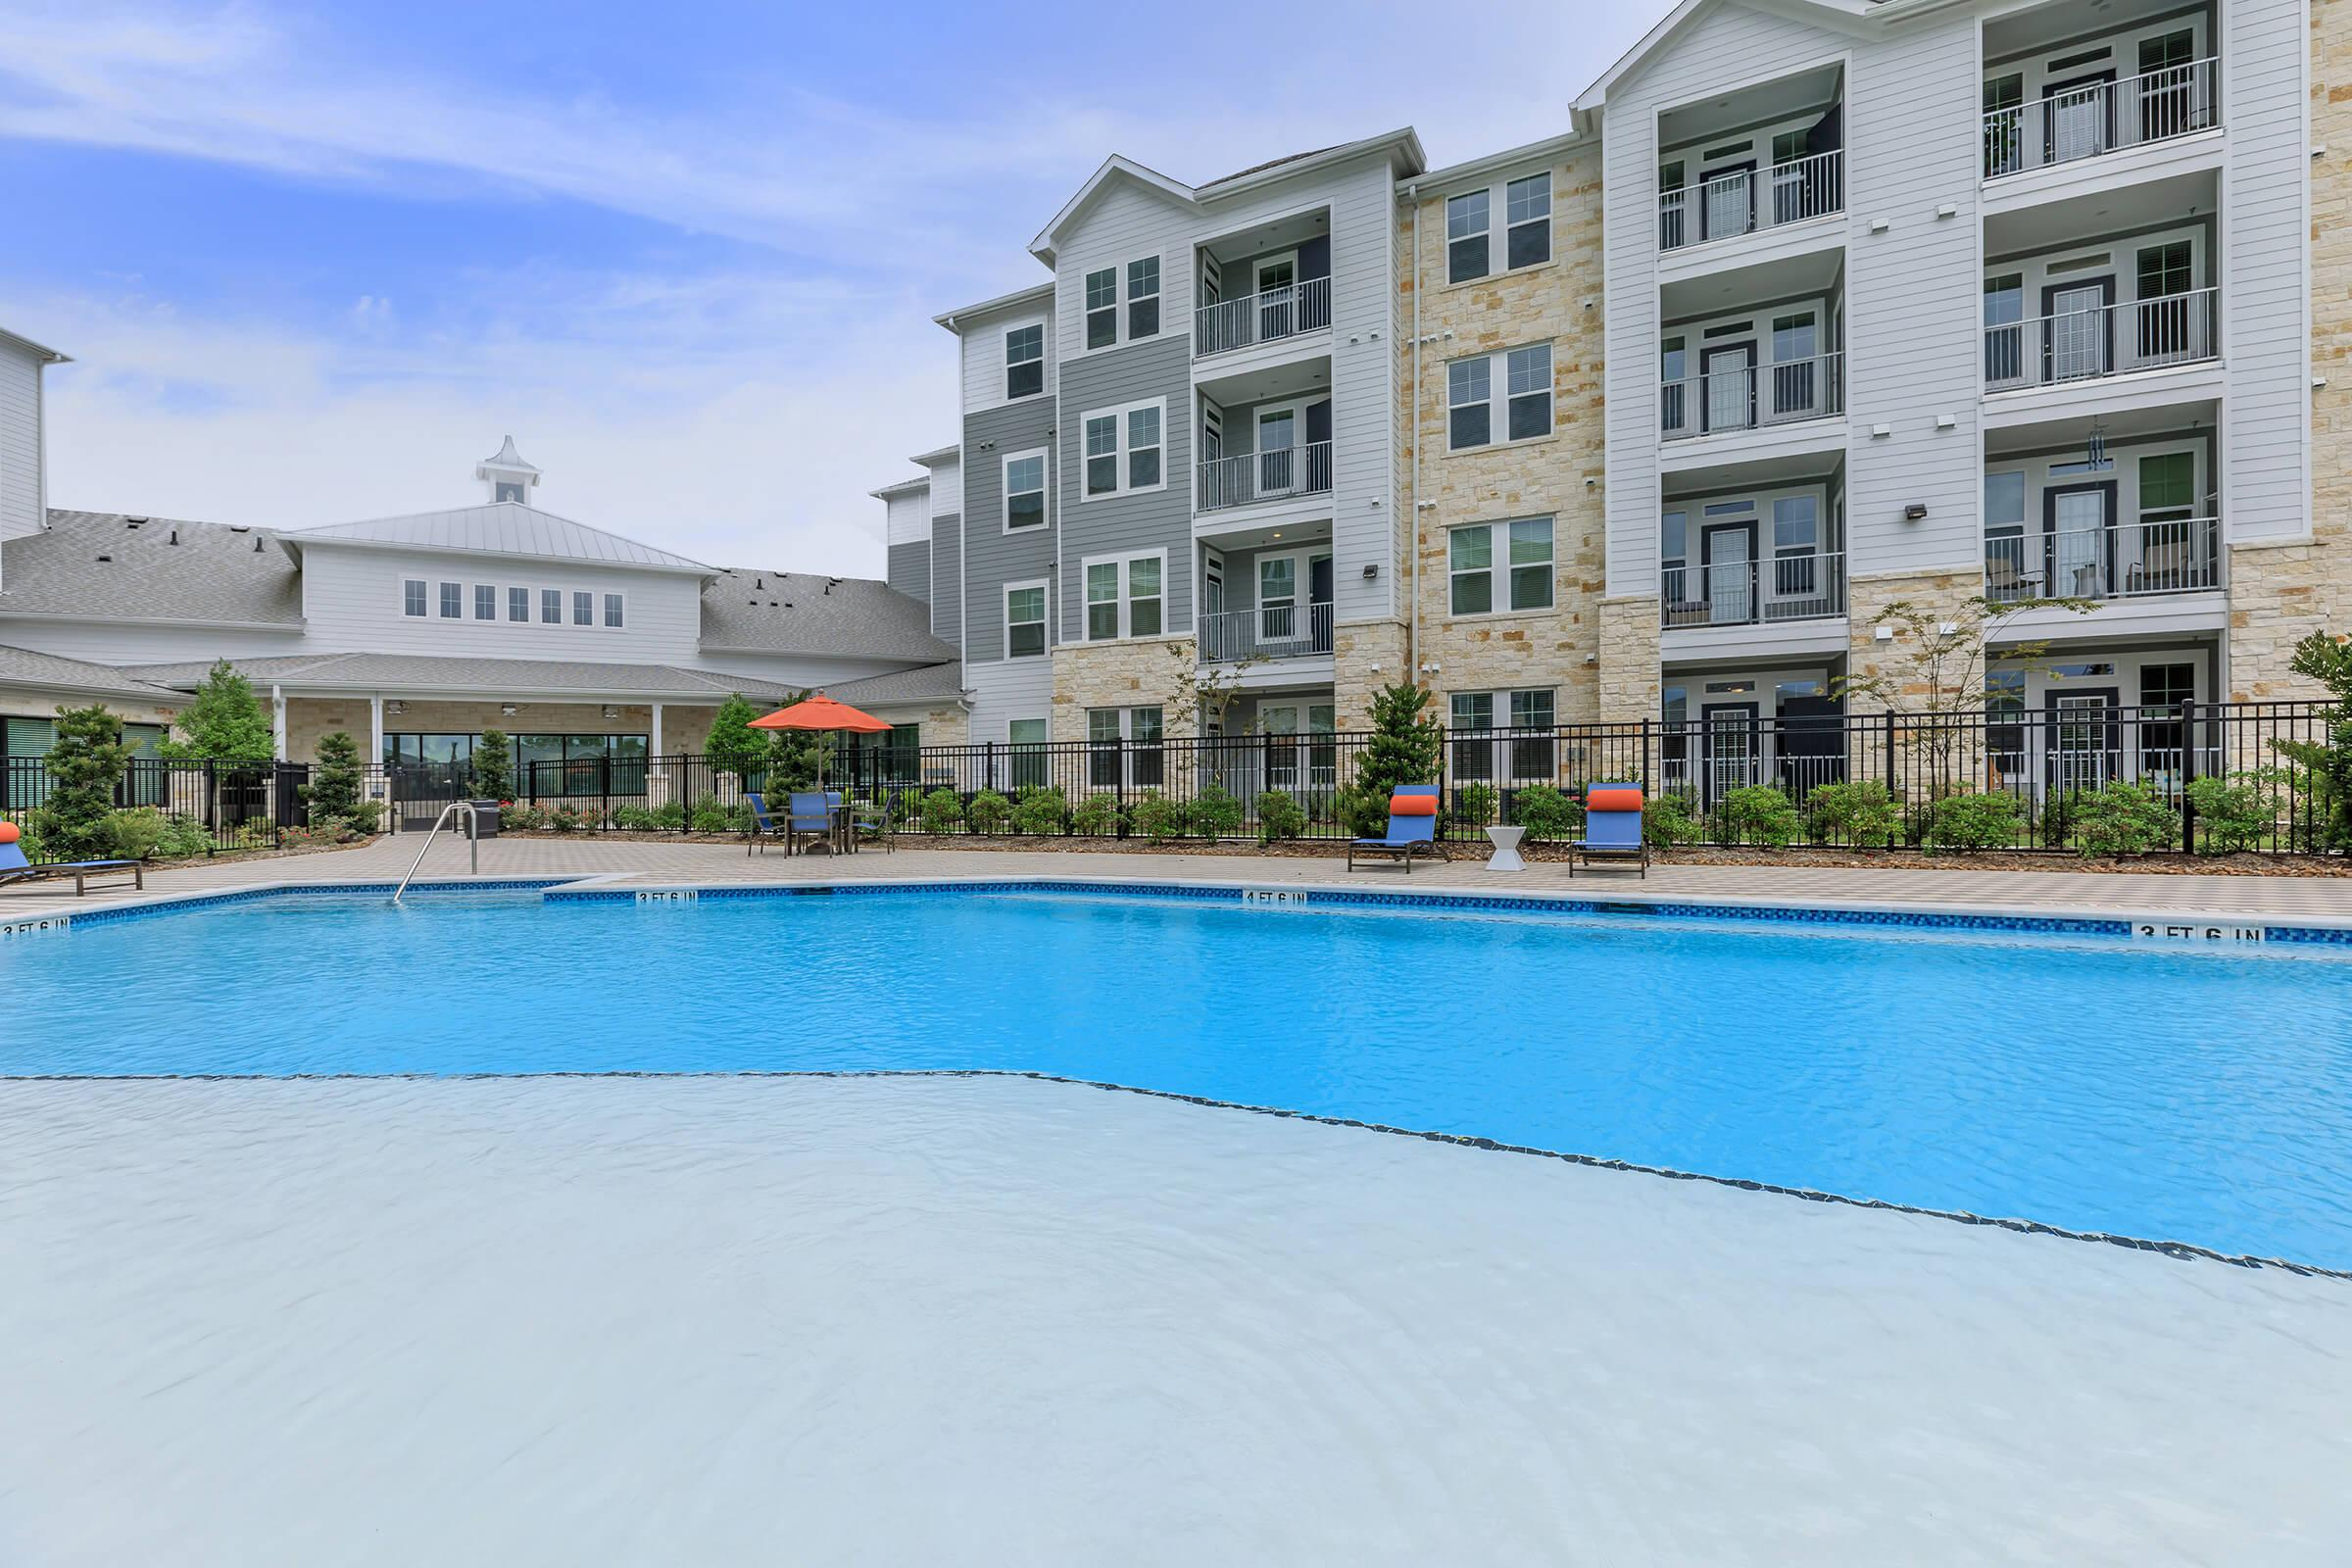 APARTMENT HOMES FOR RENT IN MONT BELVIEU, TEXAS